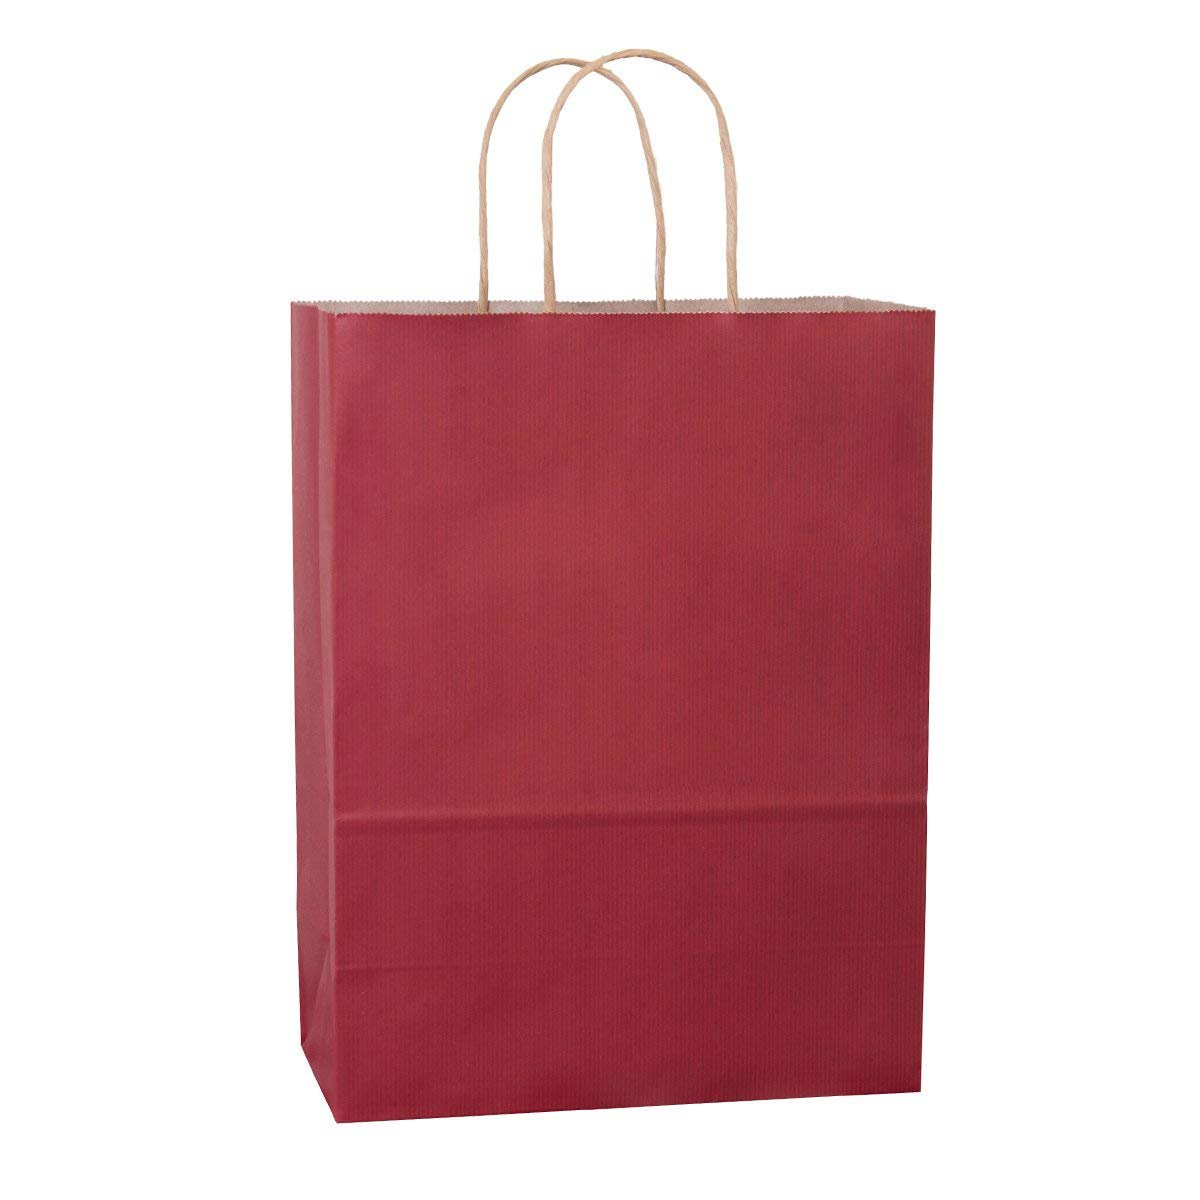 BagDream 10''x5''x13'', Debbie, 25Pcs Red Stripes Kraft Paper Bags, Shopping, Mechandise, Retail, Party, Gift Bags, 100% Recycled FSC Compliant